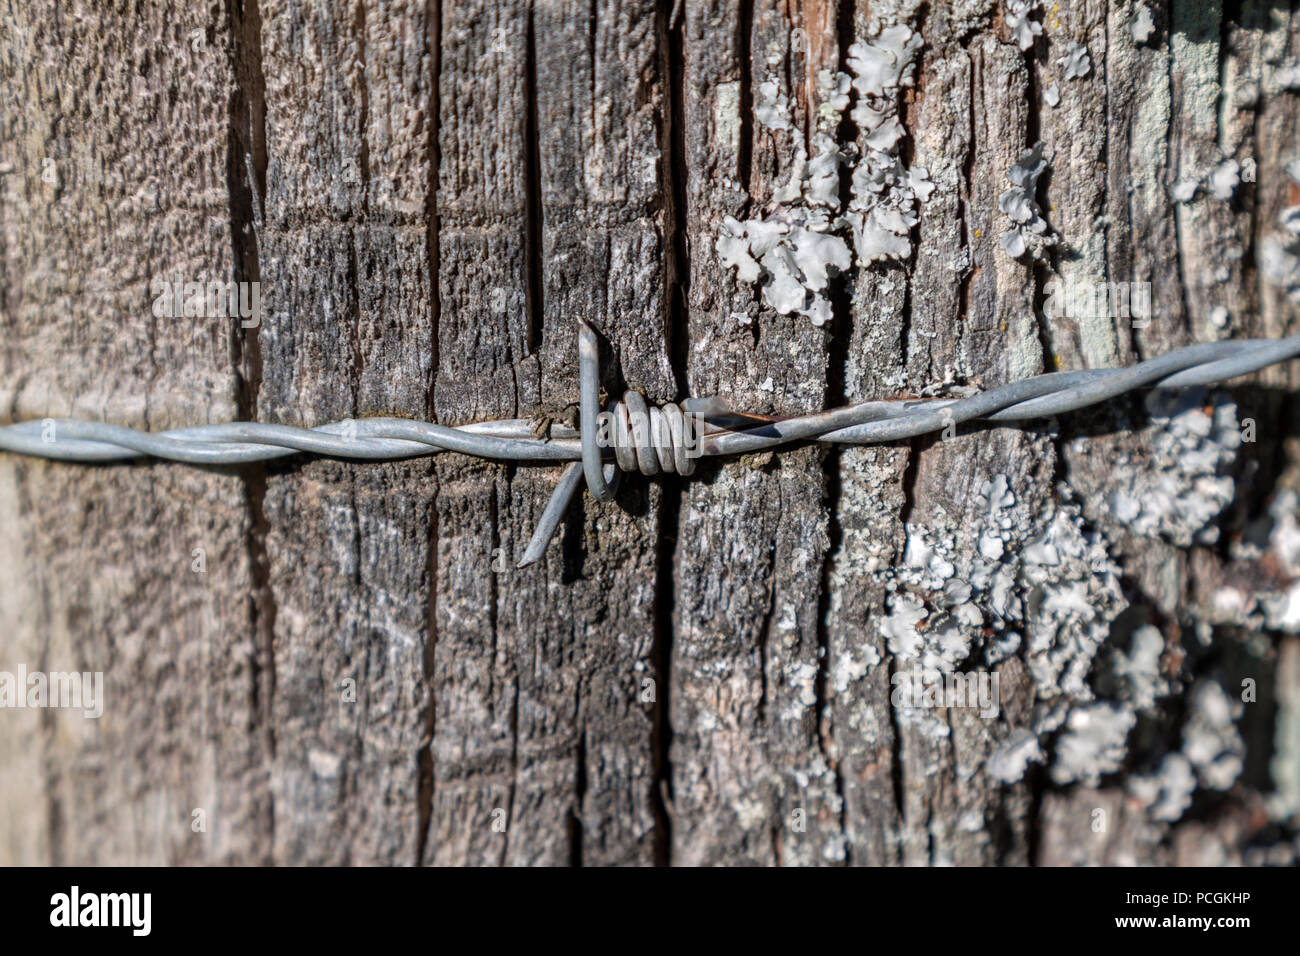 Close-up of barbed wire embedded in a fungus covered fence post. - Stock Image